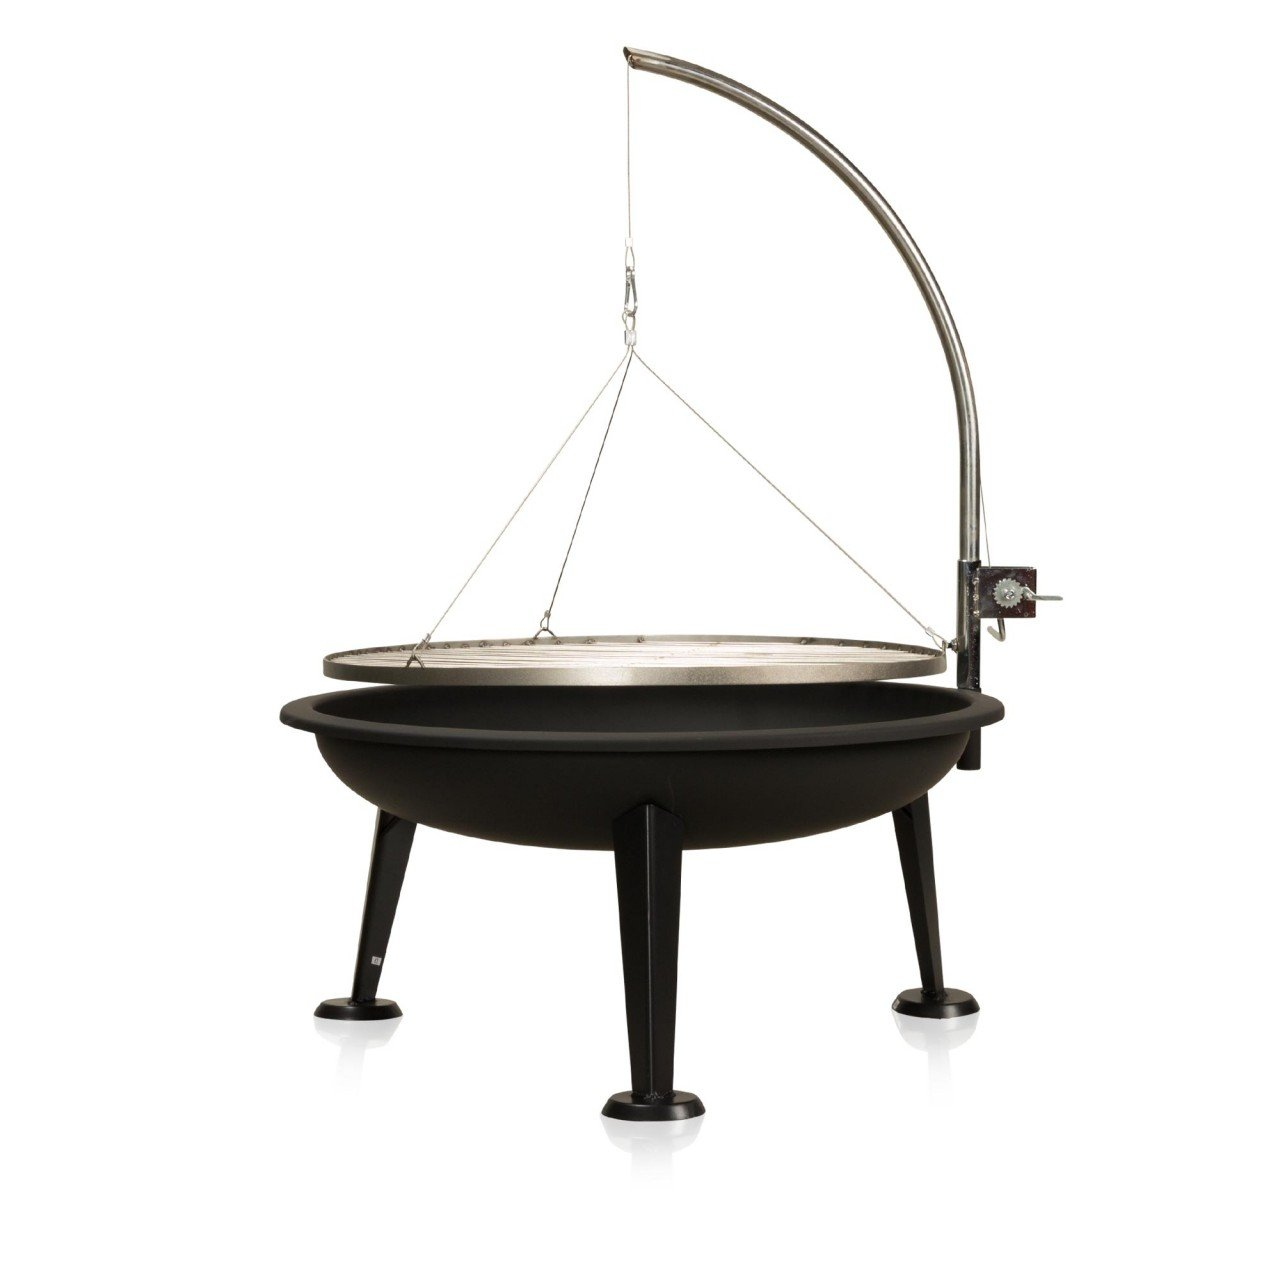 Fire bowl 80 cm, Camelot tripod swivel barbecue with cable and stainless steel cooking grate, 120 x 64 x 74 cm ambico Fire bowl 80 cm 120 x 64 x 74 cm